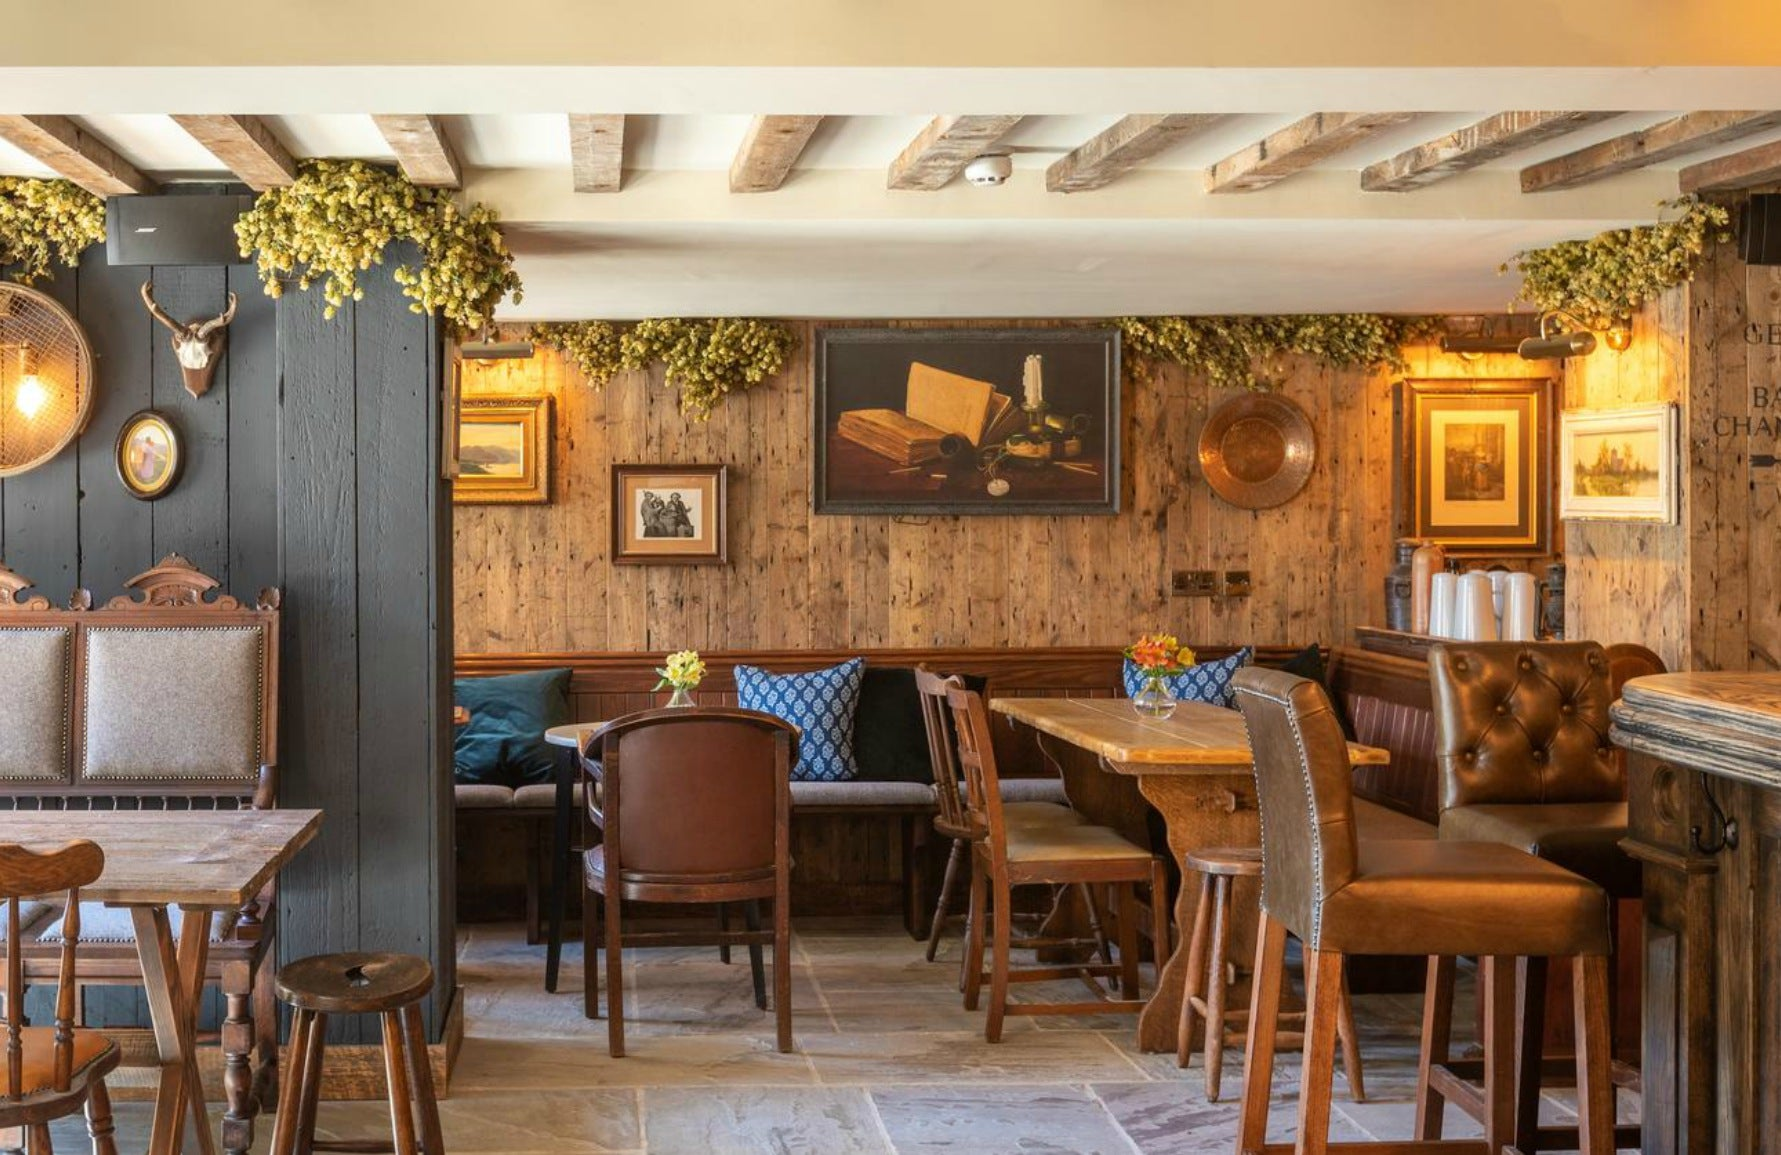 Top Country Hotels for the Bank Holiday Weekend | The Frogmill | LuxDeco.com